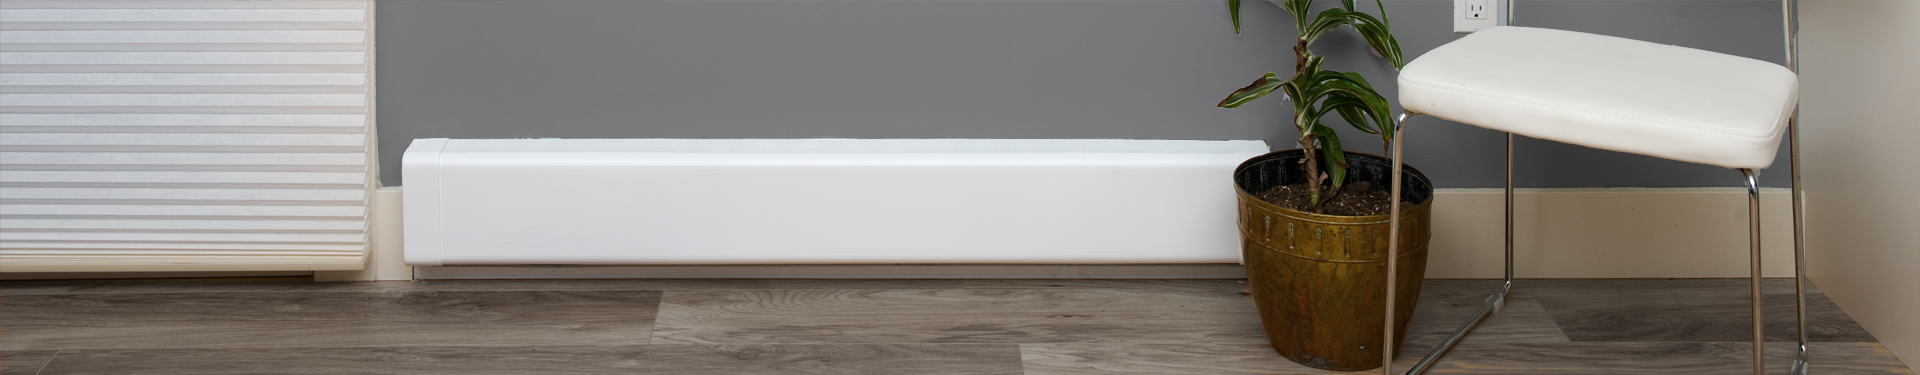 baseboard-heater-cover-ventandcover.jpg